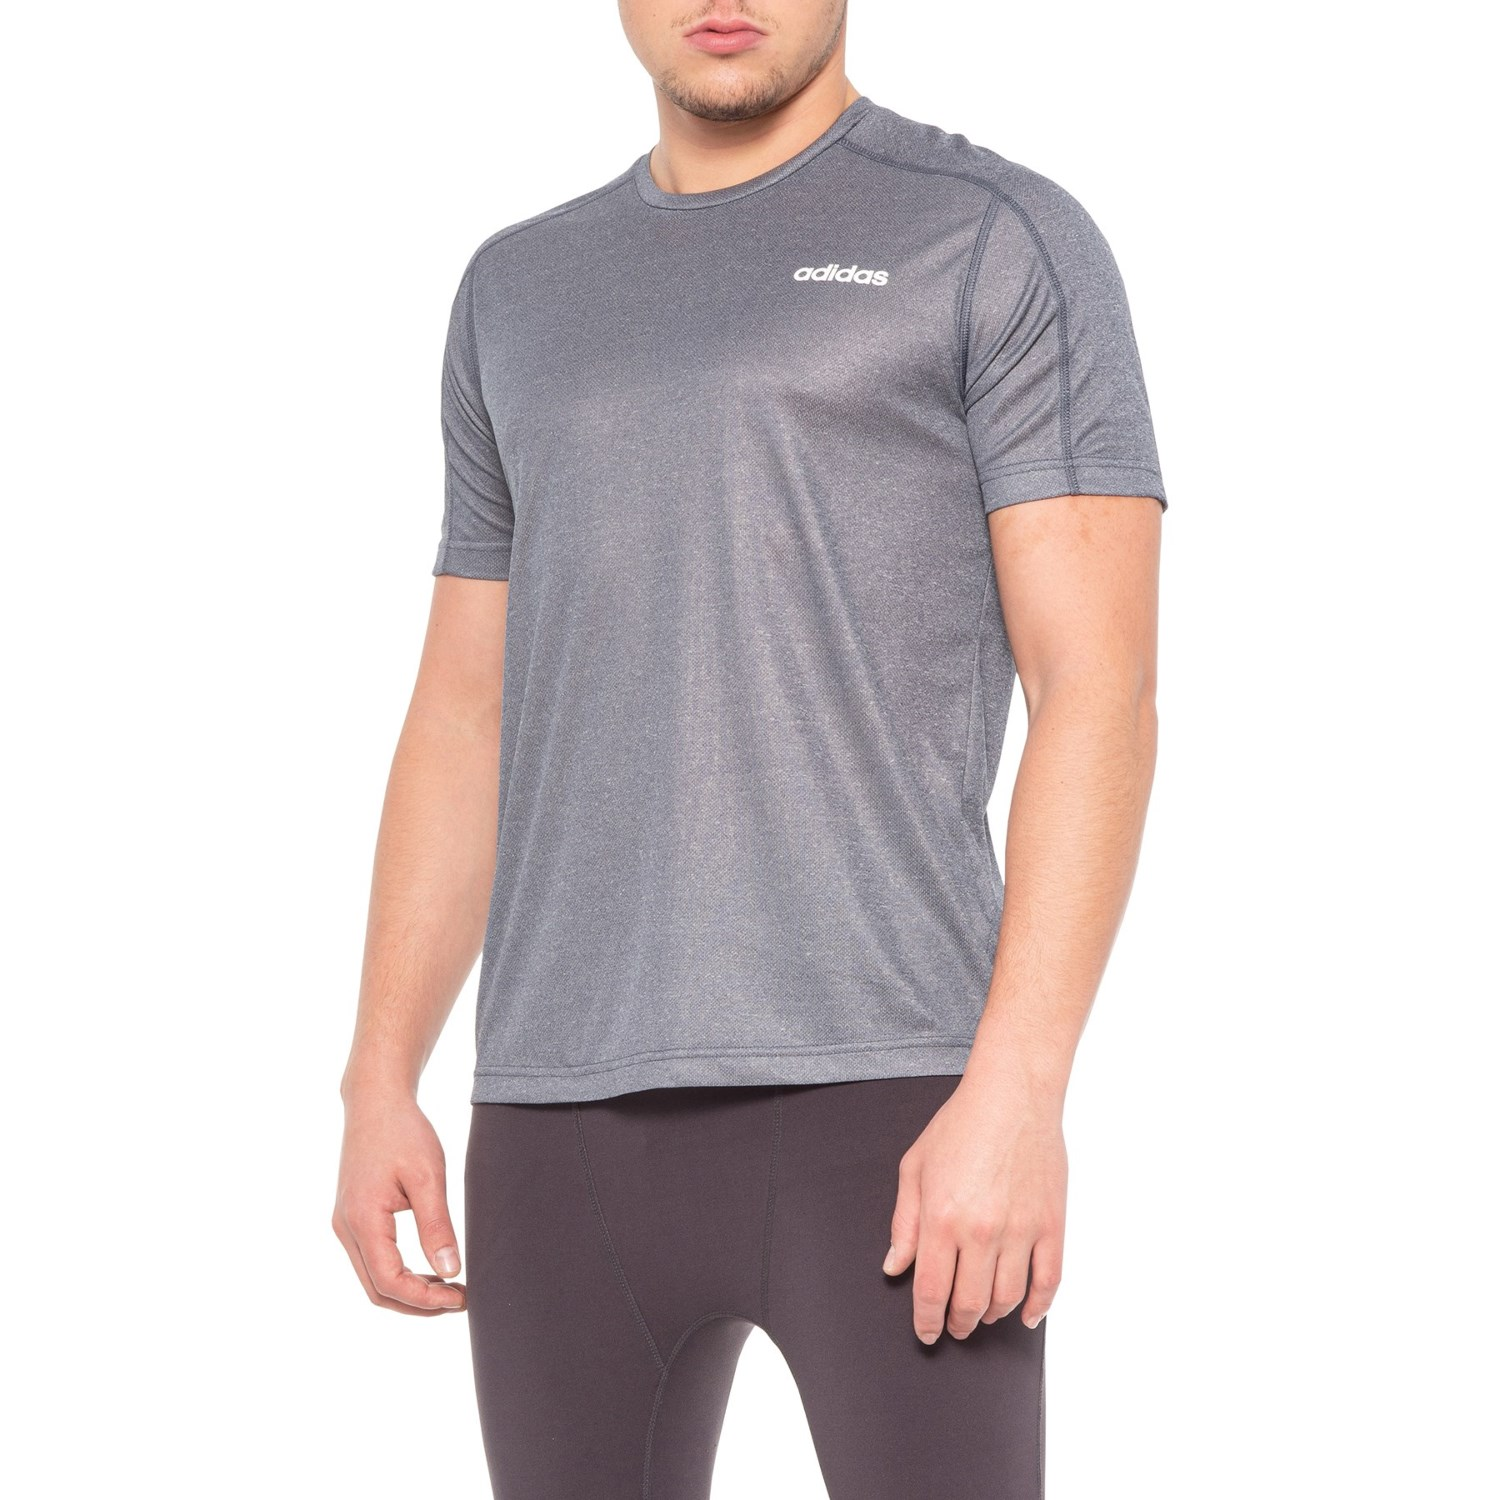 adidas Designed 2 Move Heathered T Shirt (For Men) Save 60%